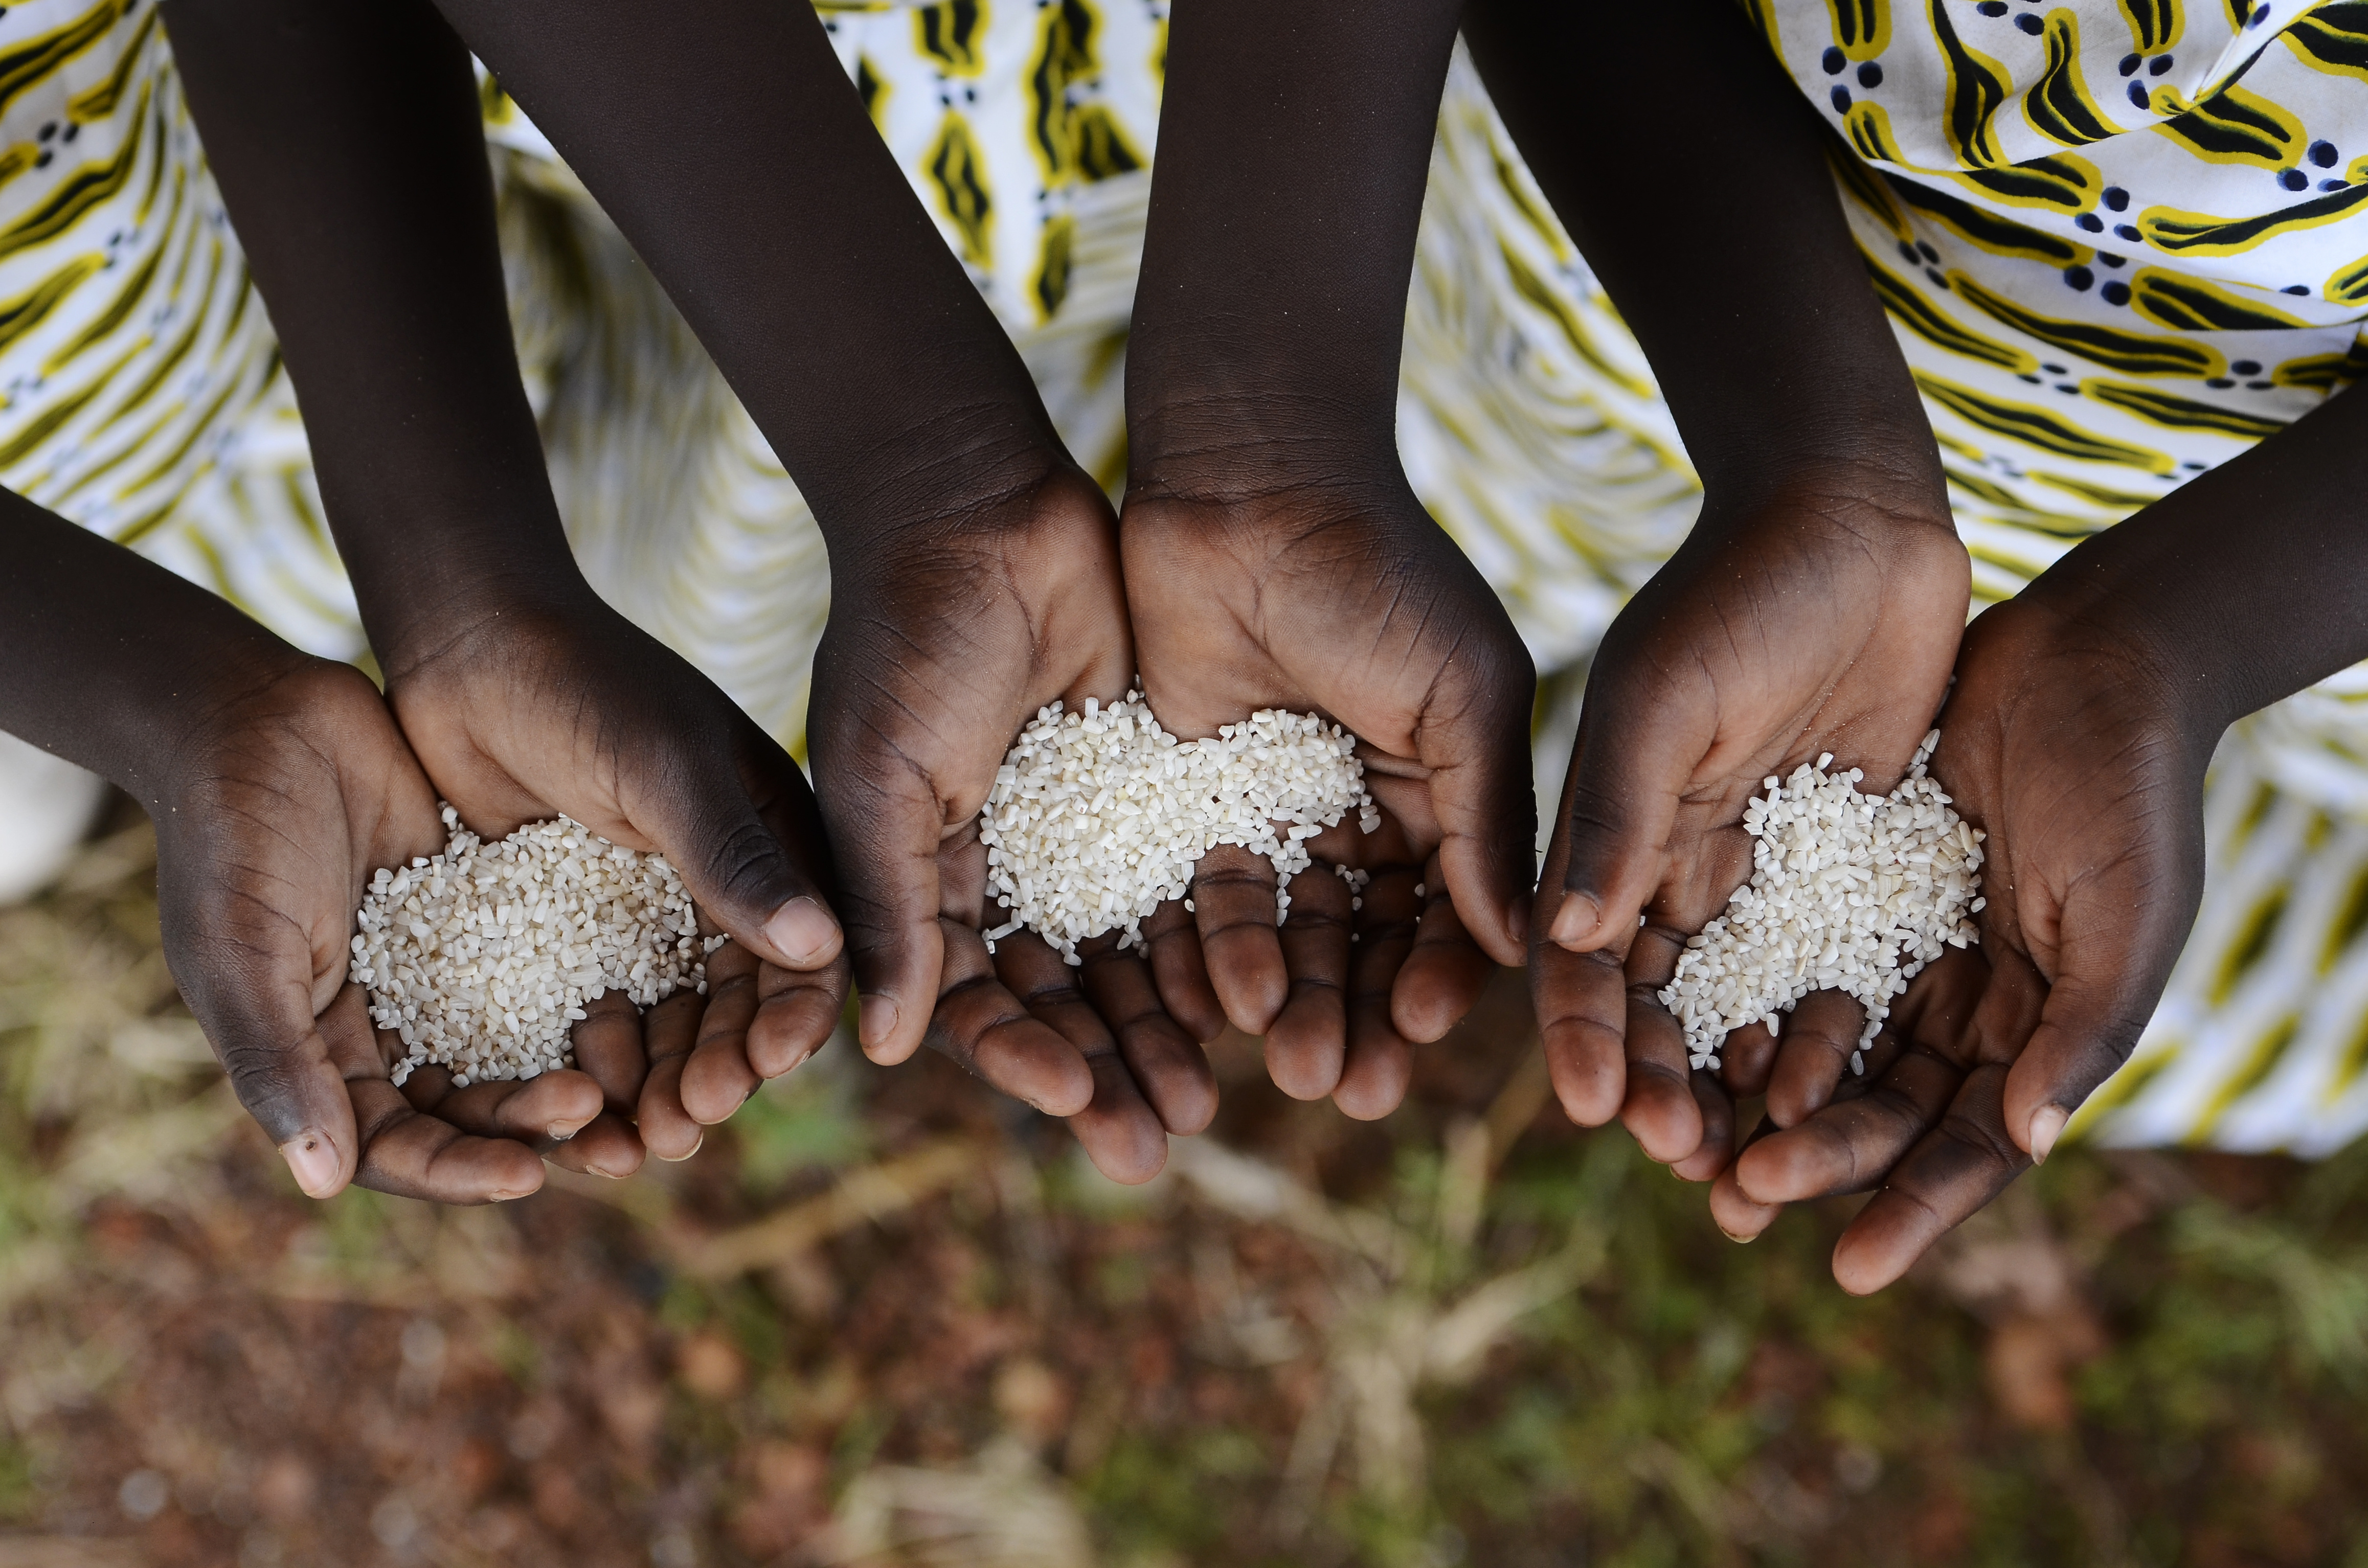 Hands holding rice grain